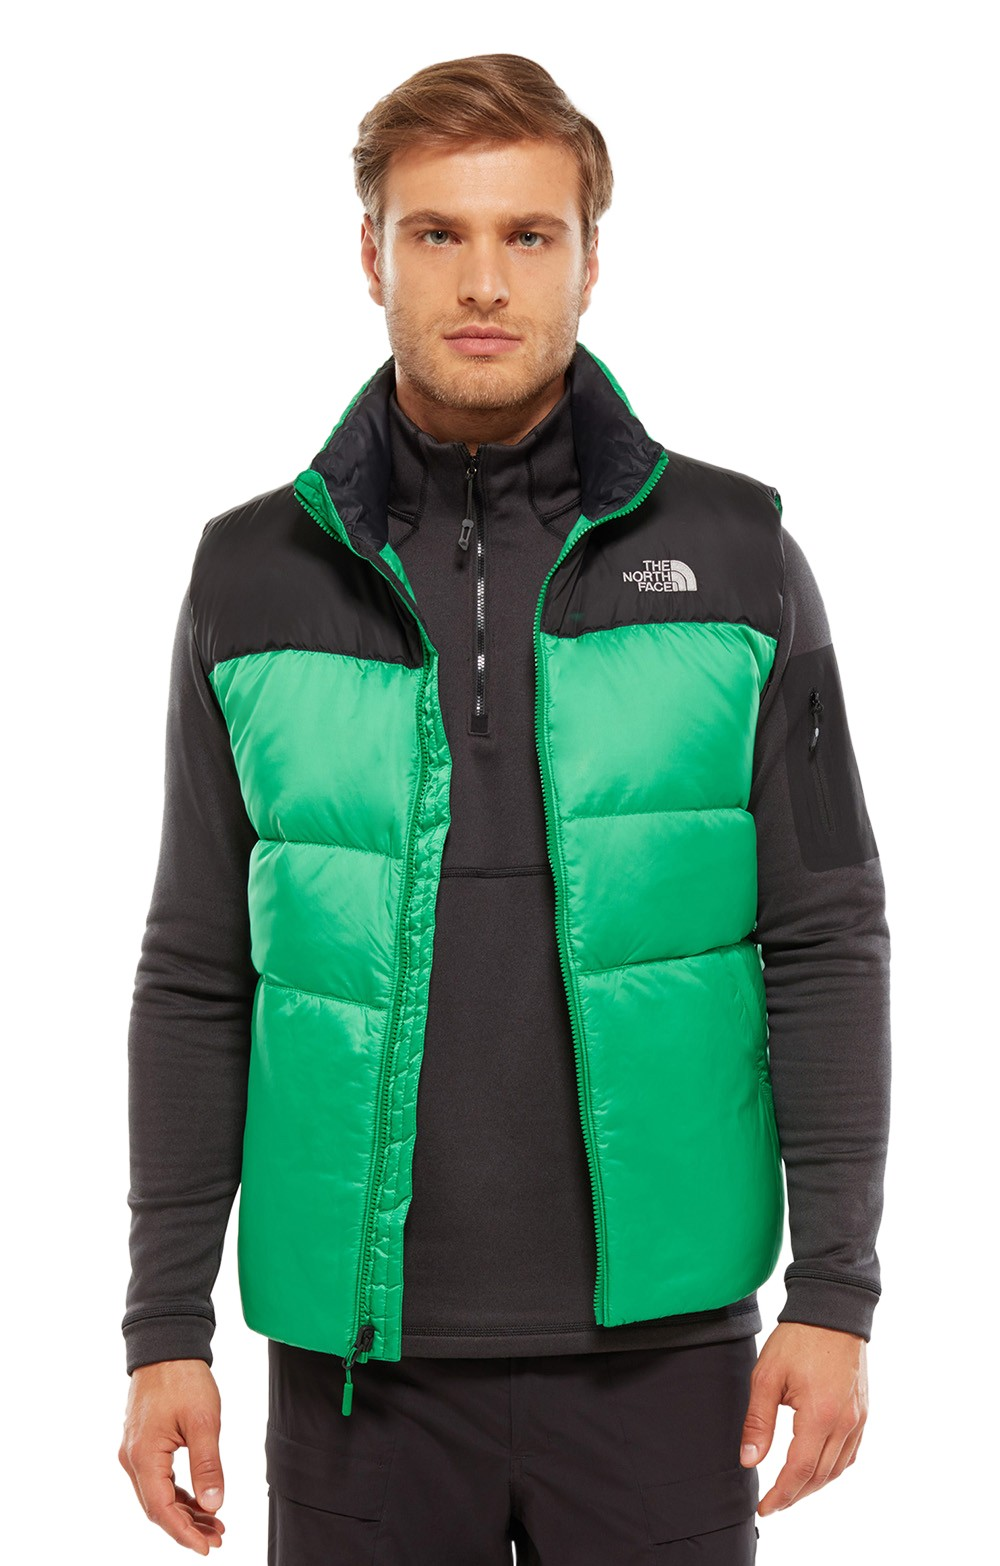 Nye Mens The North Face Nuptse Vest - House of Bruar JA-62